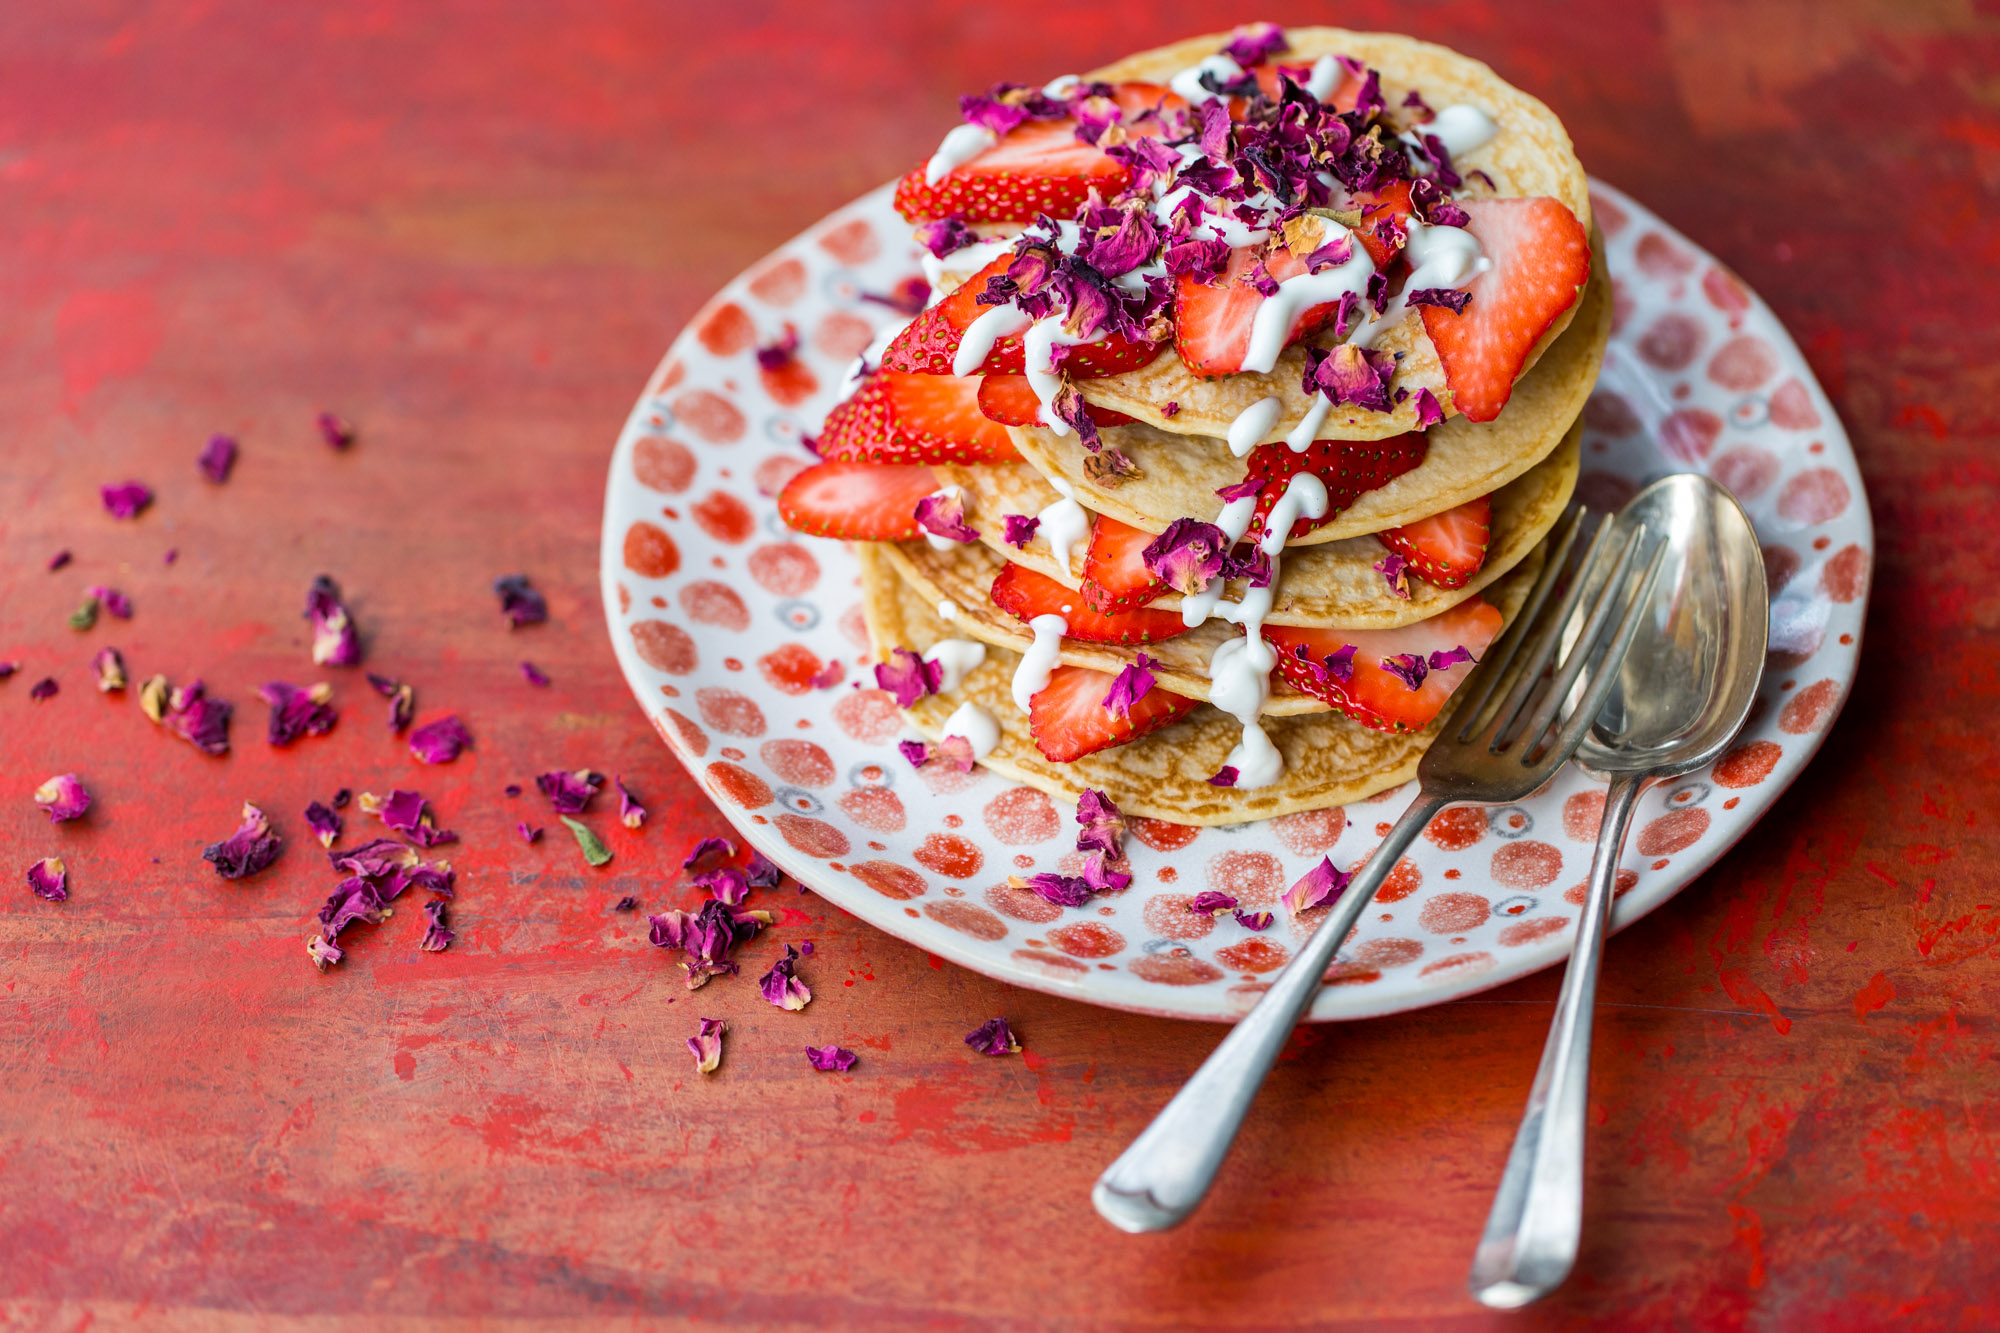 Pancakes with strawberries and cream - red rose petals